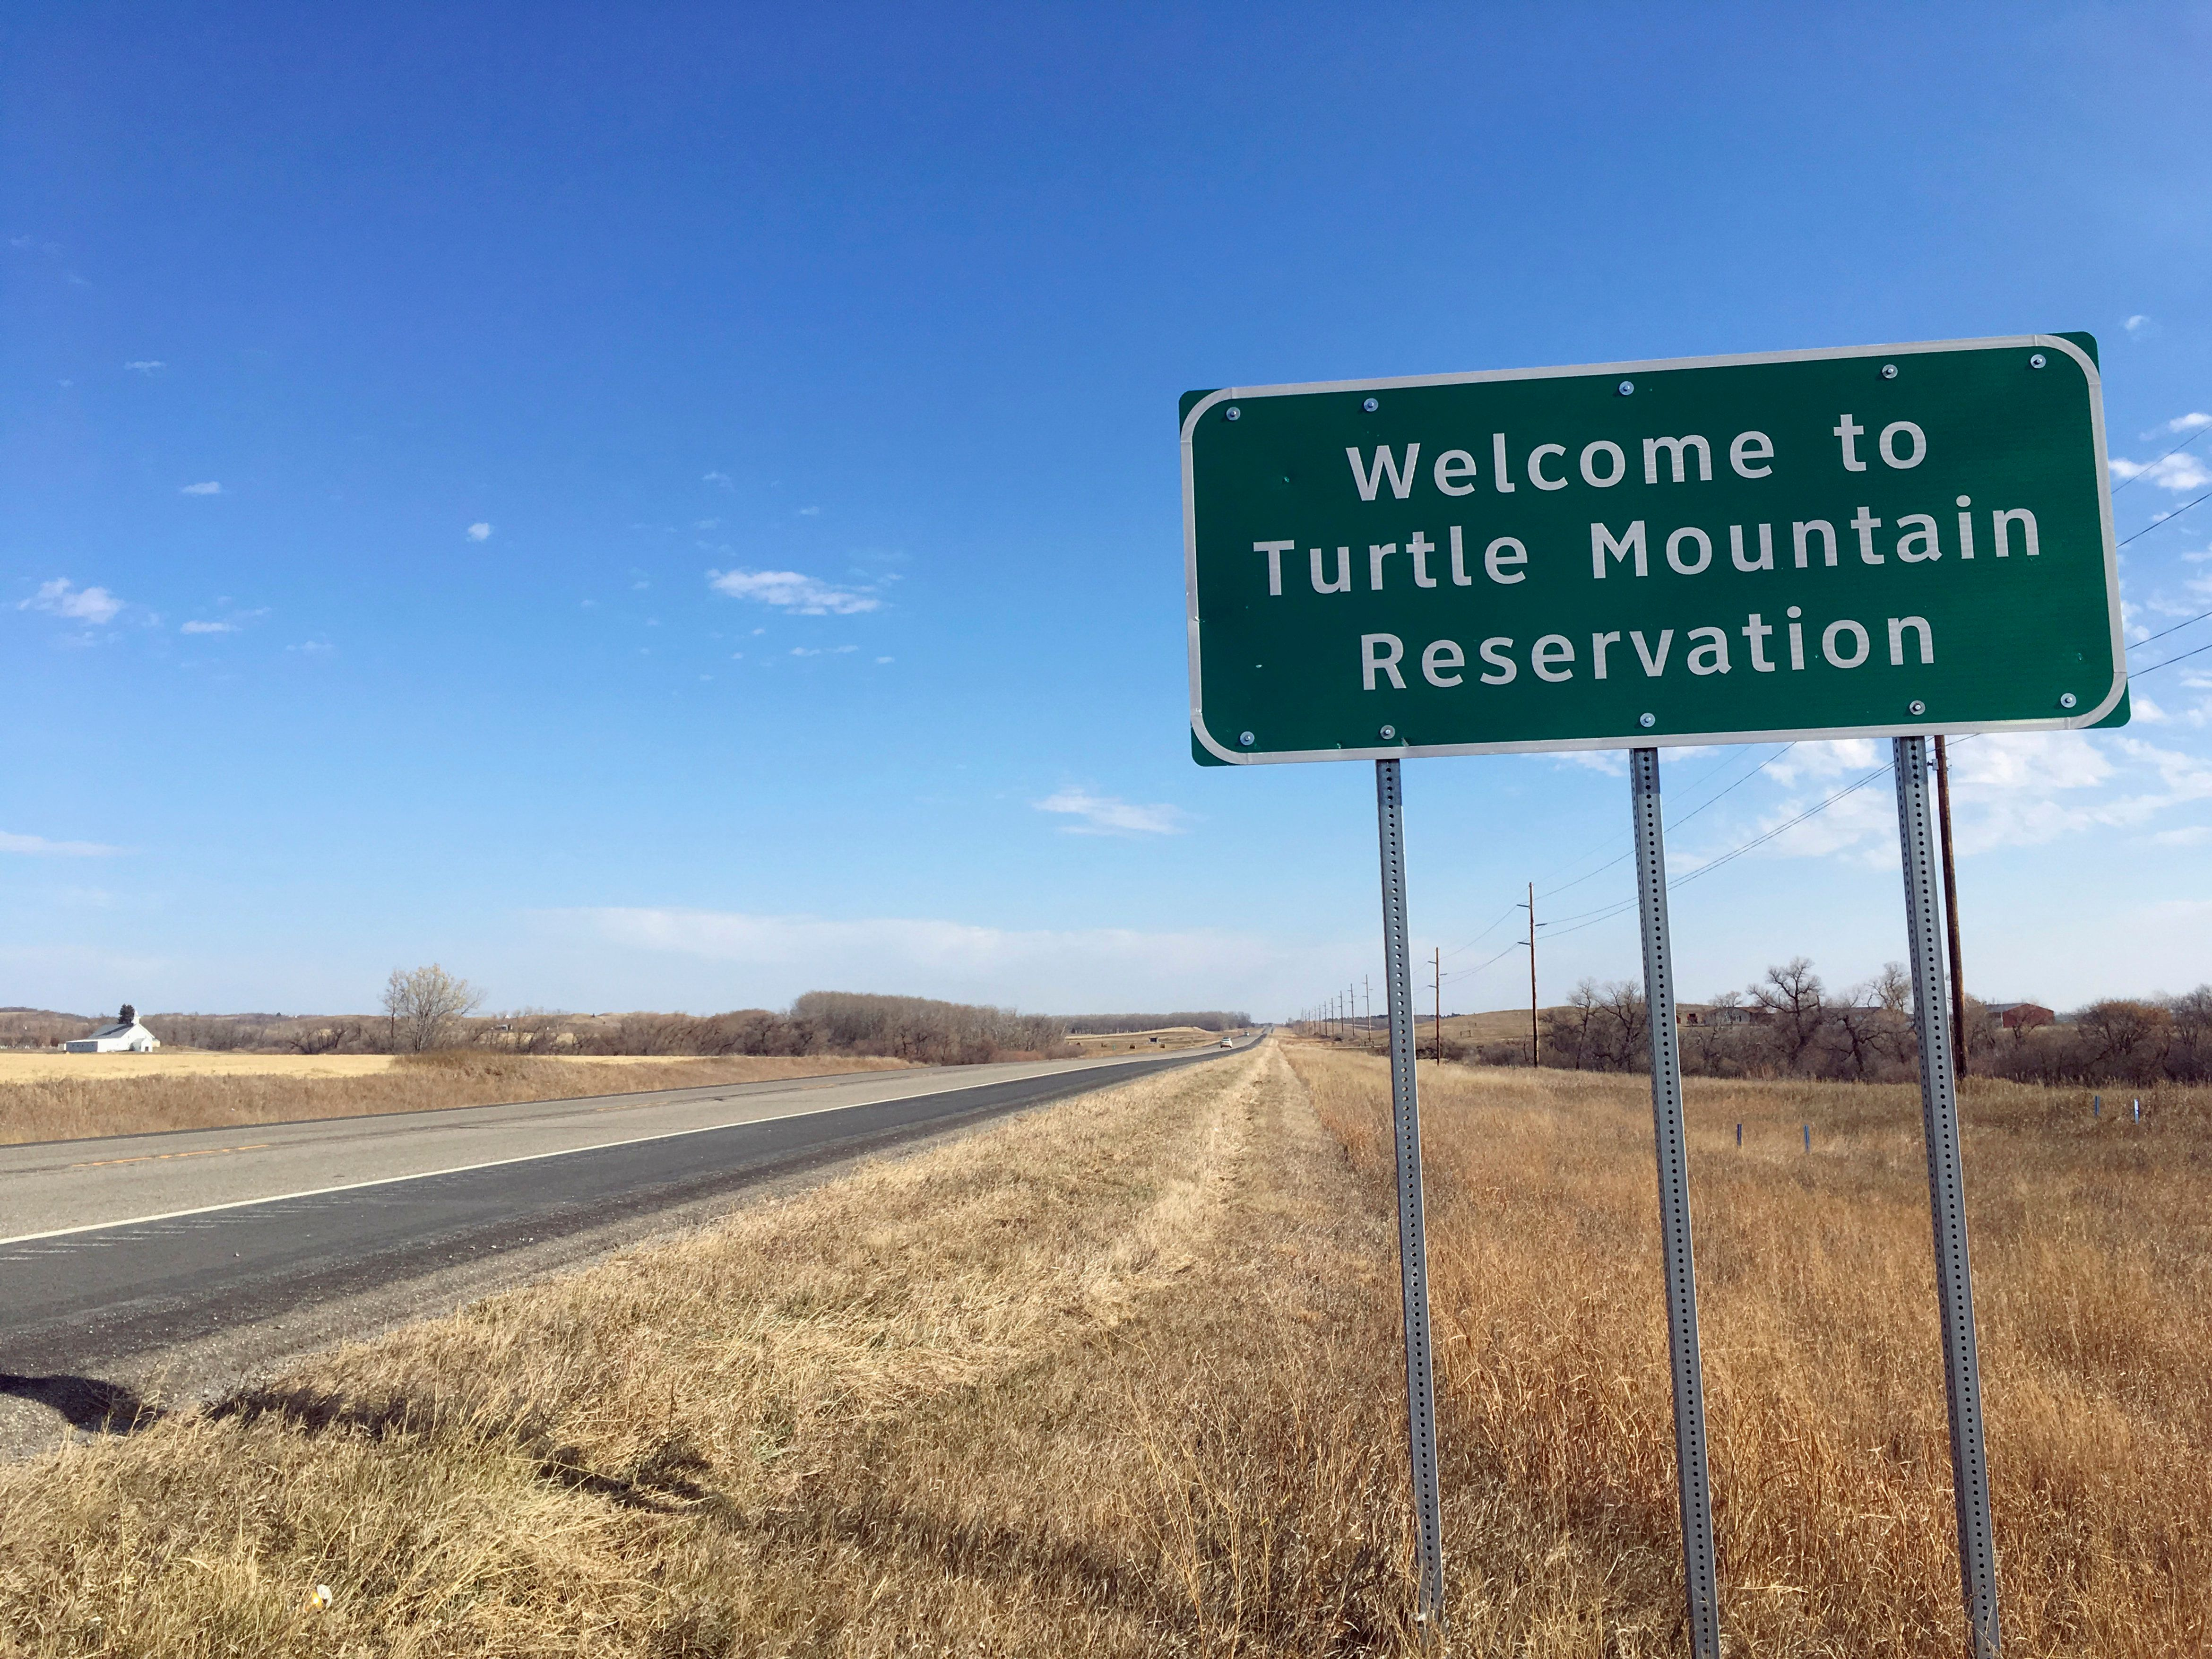 File - In this Wednesday, Oct. 24, 2018, file photo, a sign to the Turtle Mountain Reservation of Native Americans in North Dakota is shown before Election Day amid concerns over voter ID. A new report released Thursday, Dec. 20, 2018, by the U.S. Commission on Civil Rights finds that funding levels for Native American tribes are woefully inadequate despite the federal government's responsibility to provide for education, public safety, health care and other services under treaties, laws and other acts. (AP Photo/Blake Nicholson, File)